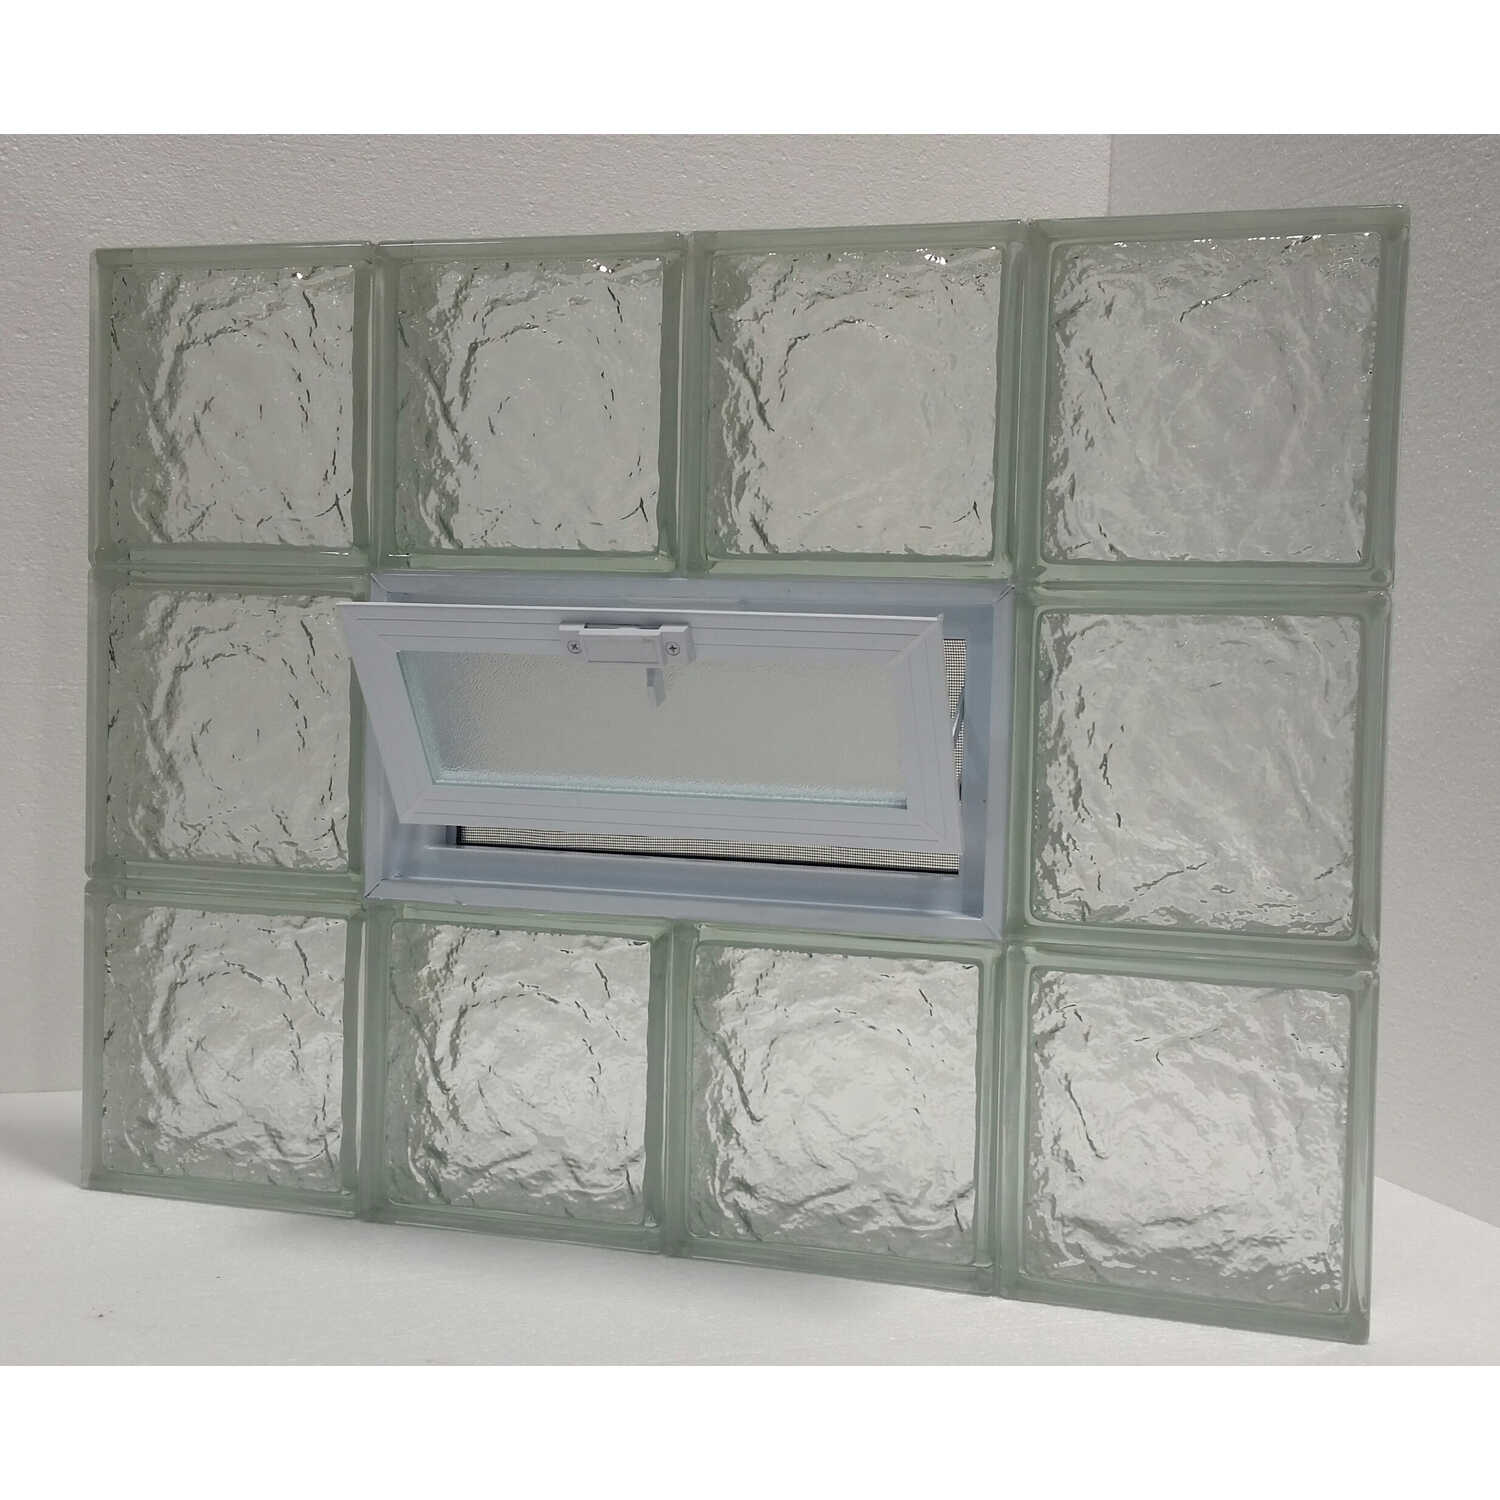 Clear Choice  23.25 in. H x 31 in. W x 3 in. D Panel